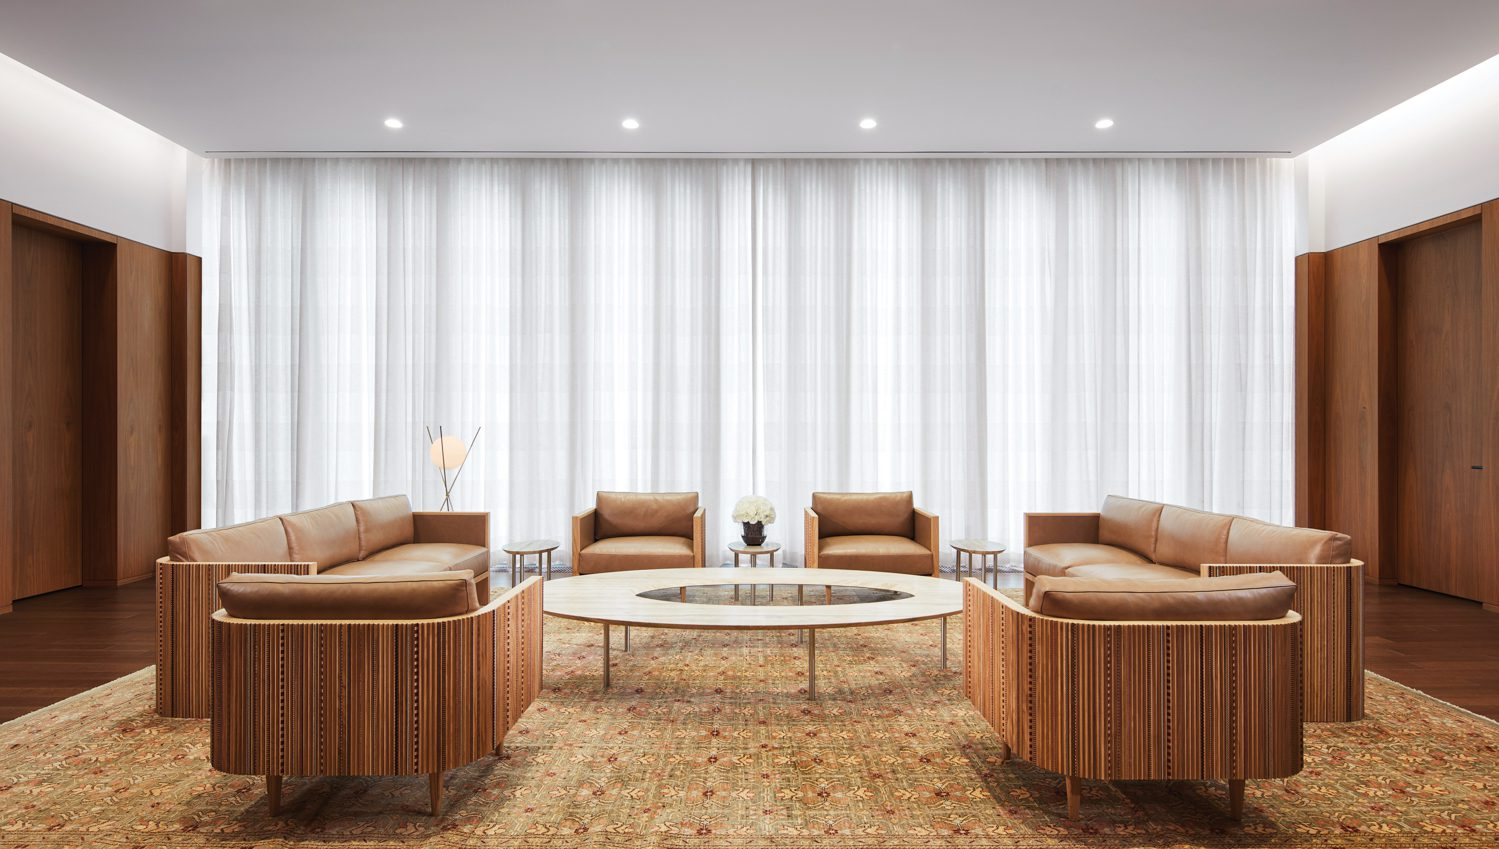 Debs also designed an executive office's coffee table and marquetry-embellished sofas and armchairs.